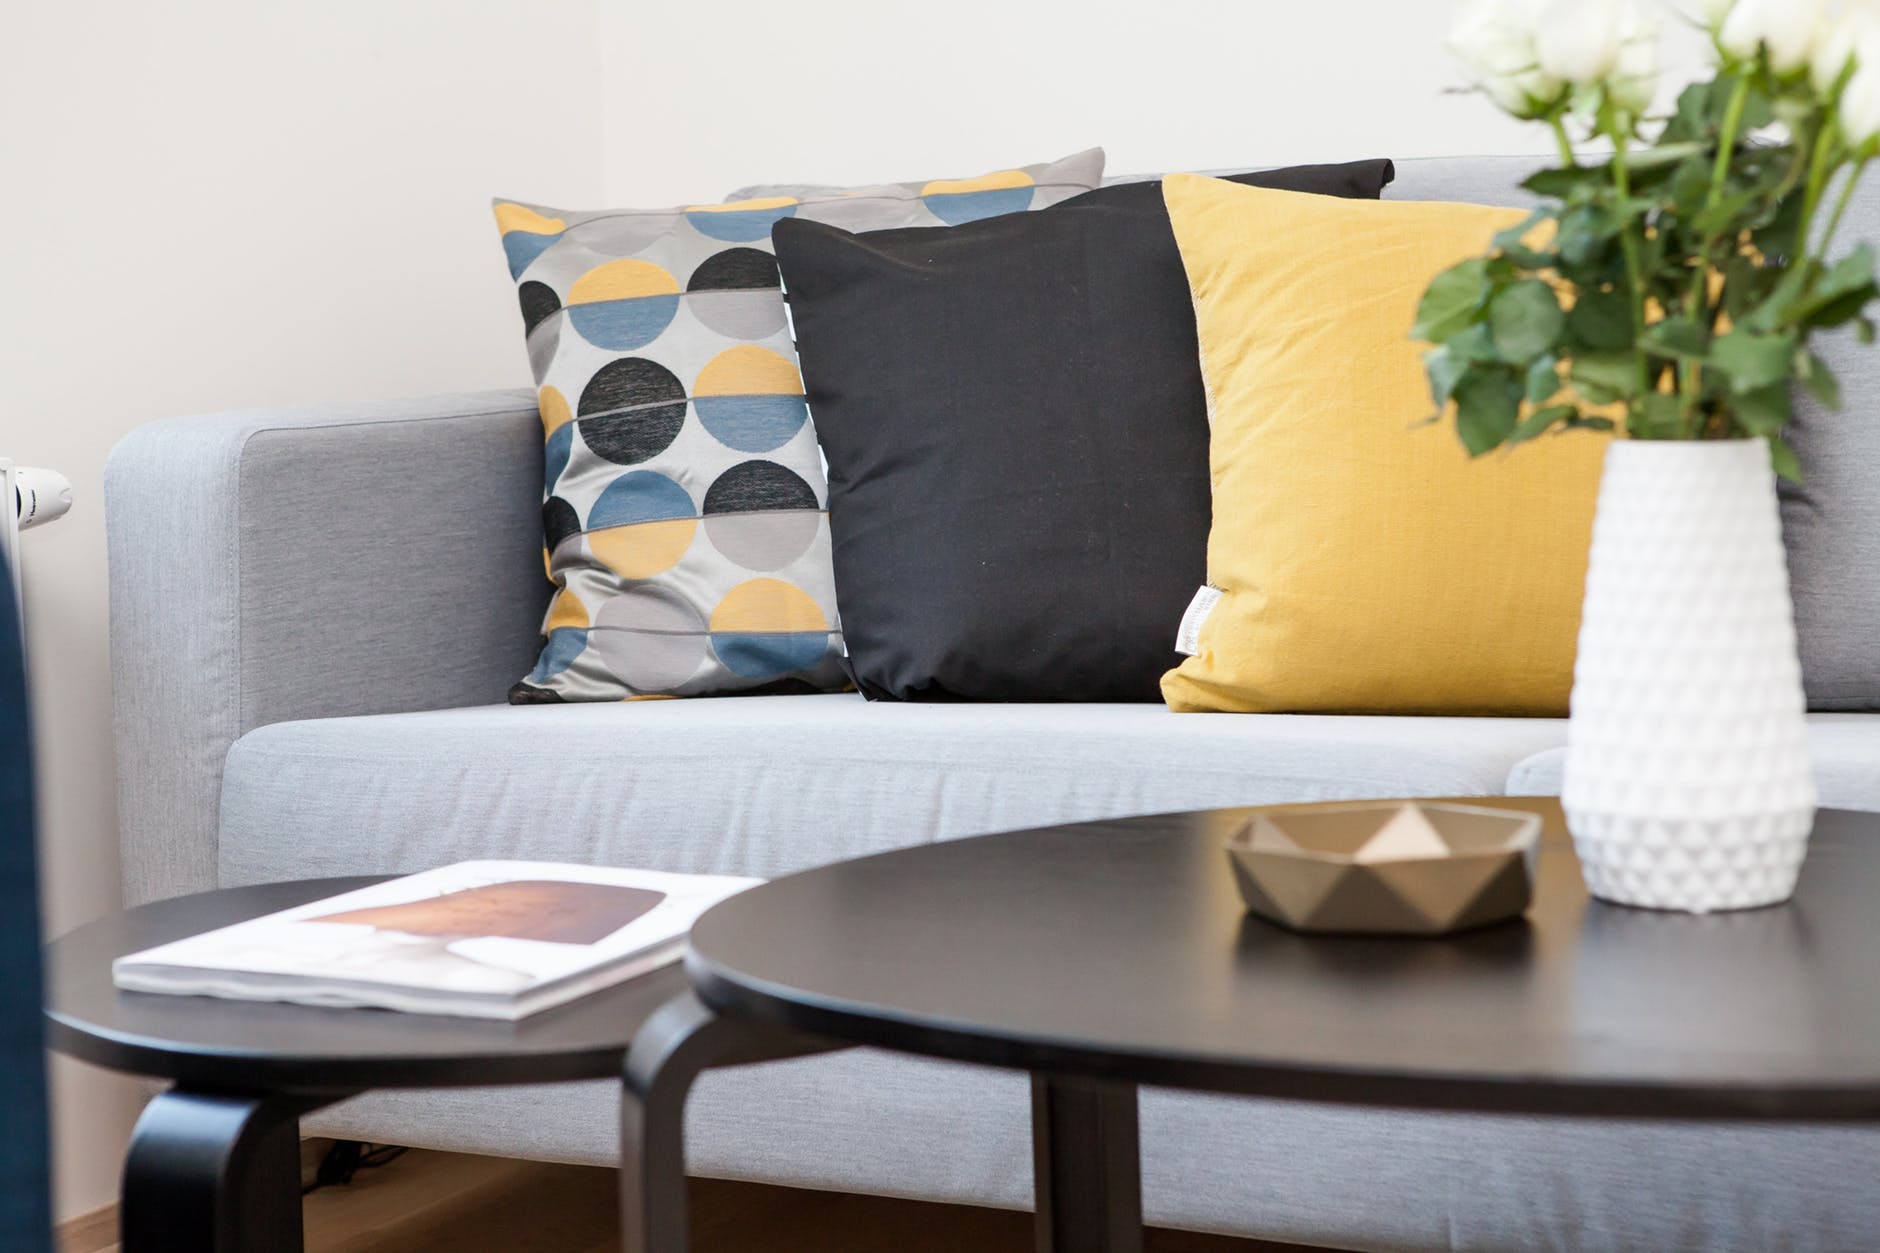 accent items like throw pillows can be swapped out with trends